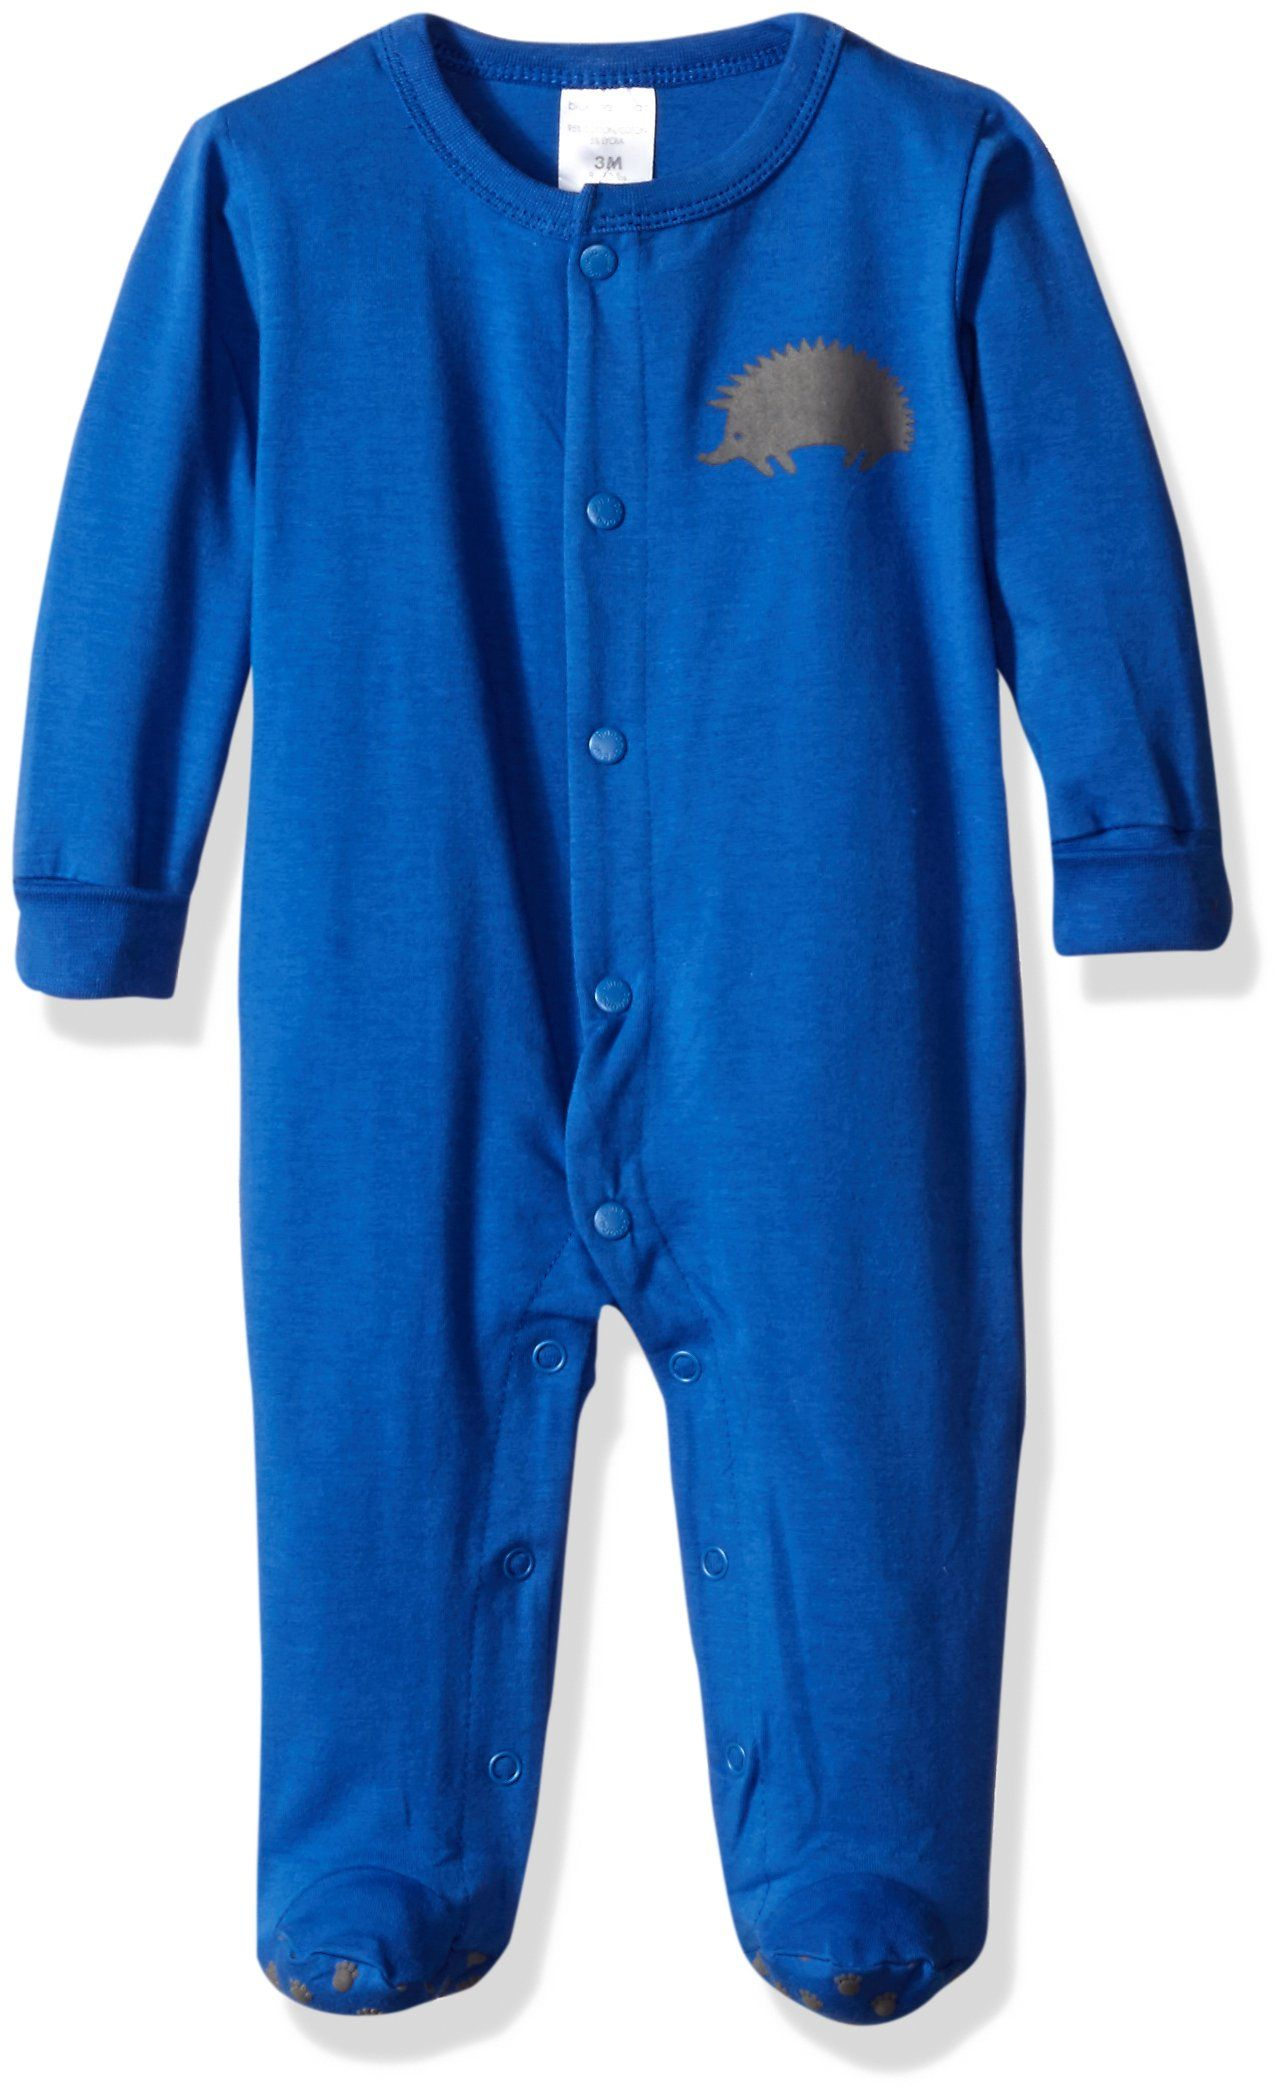 8c2417aea8 Discover ideas about One Piece Pajamas. Baby Infant Jammies For Your  Families Comic Book Microfleece Blanket Sleeper ...